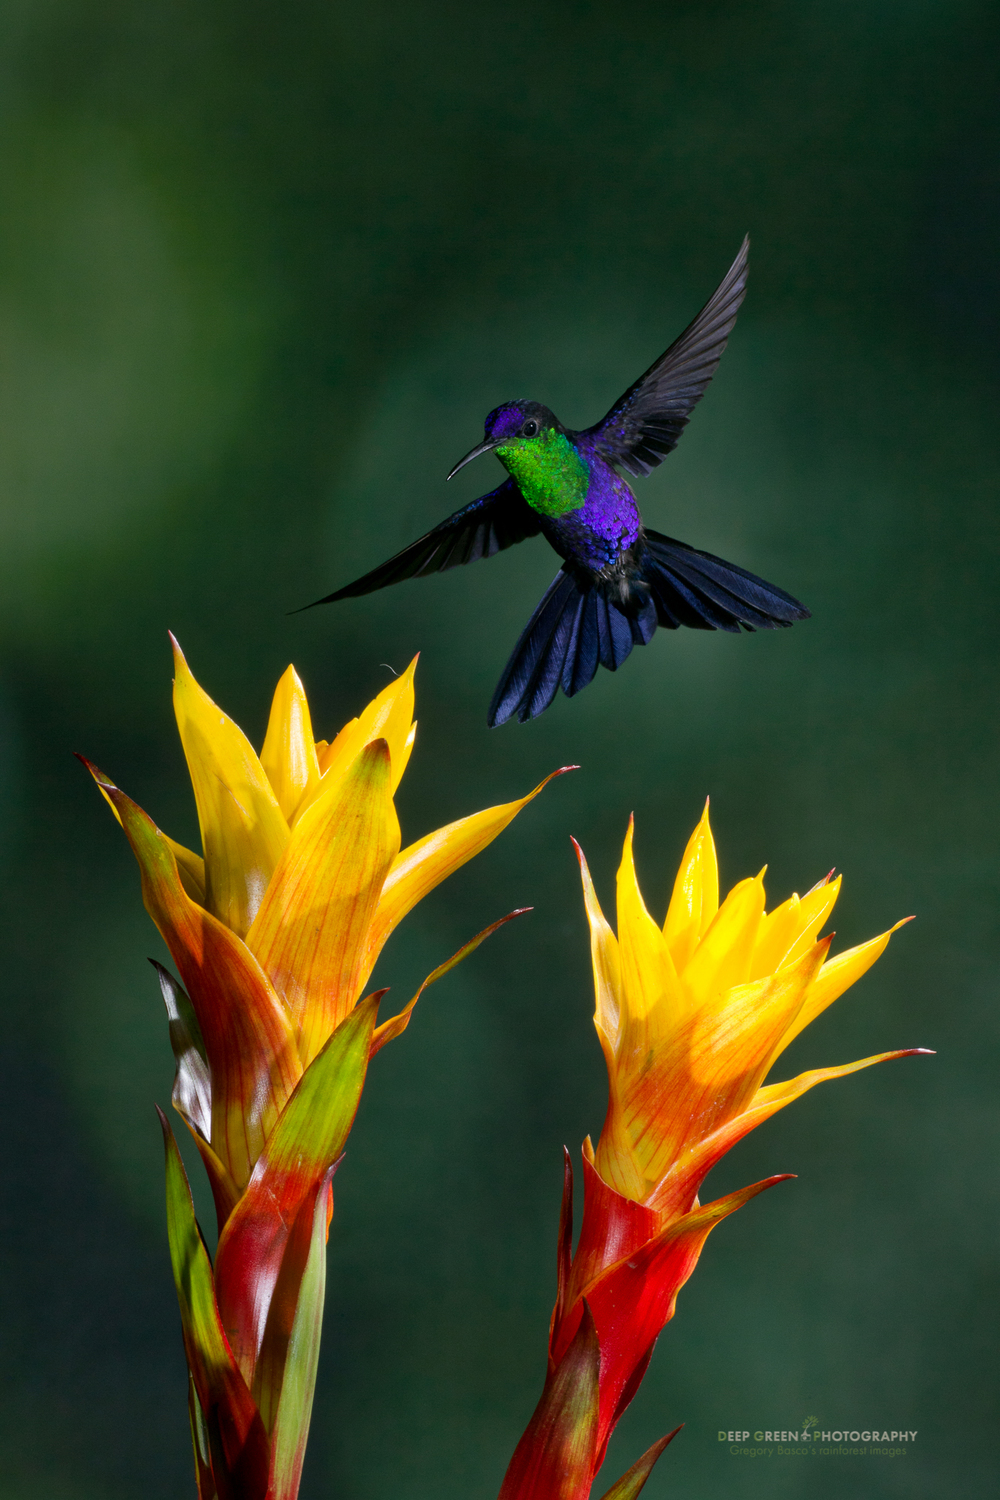 A male violet-crowned woodnymph hummingbird pollinates bromeliad flowers in Costa Rica